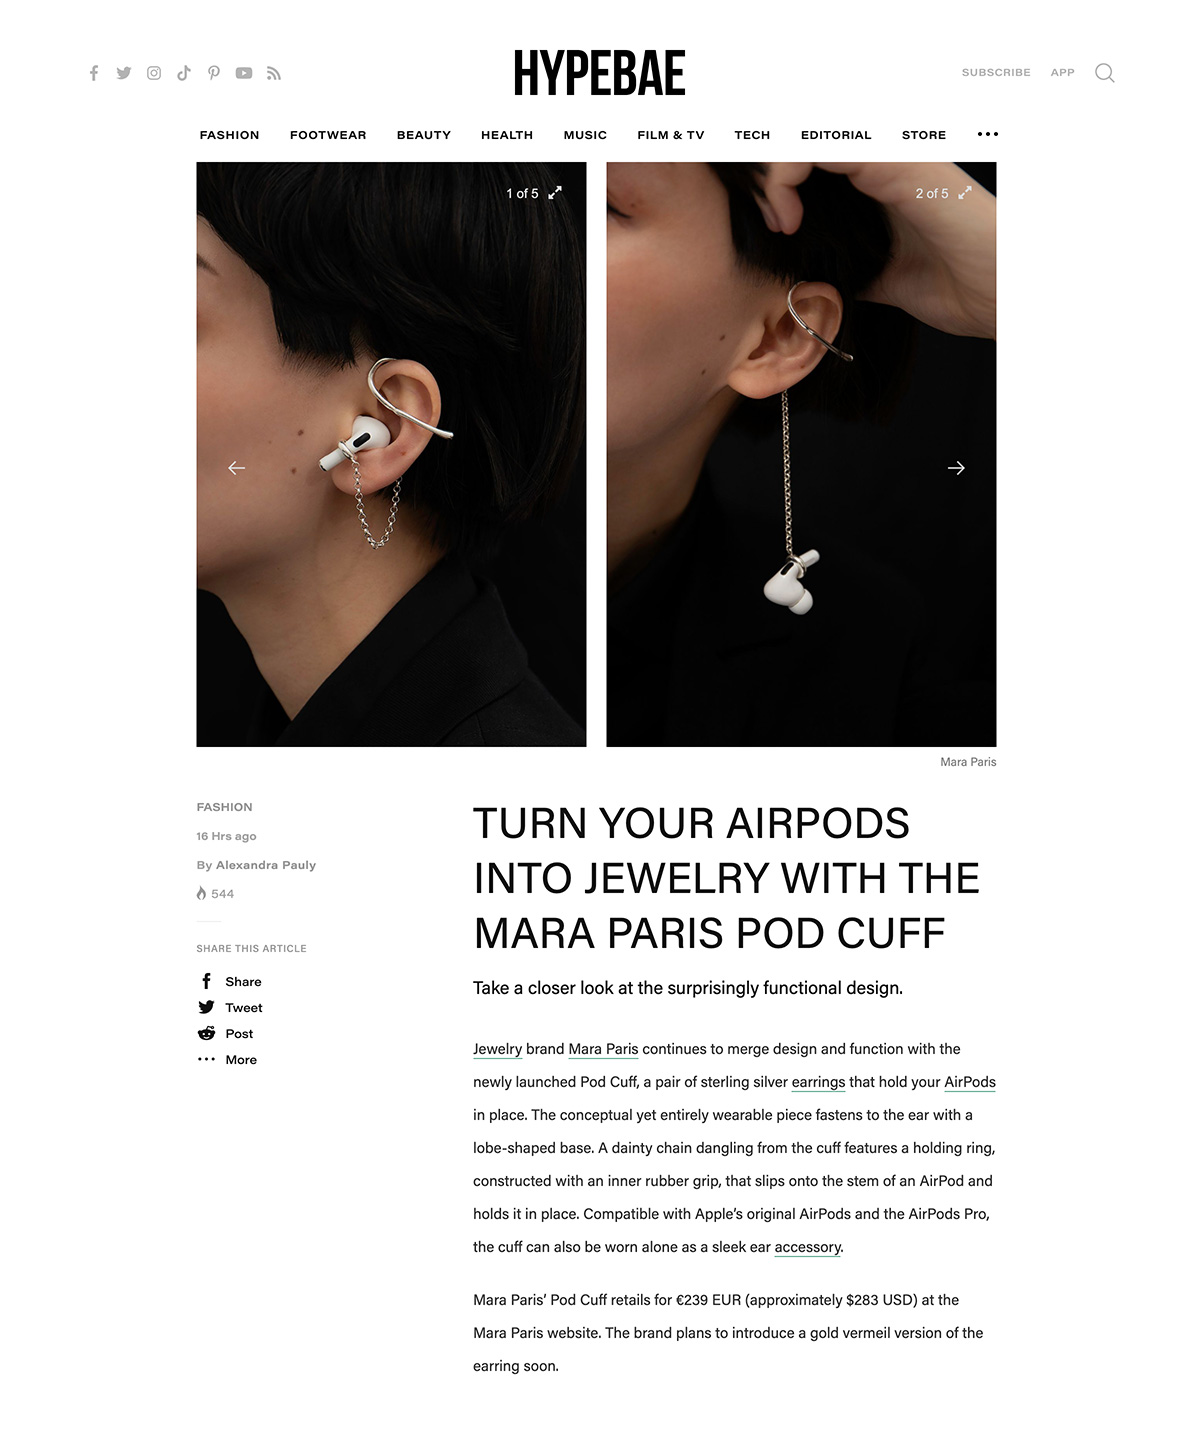 Hypebae - Turn Your AirPods Into Jewelry With The Mara Paris Pod Cuff by Alexandra Pauly